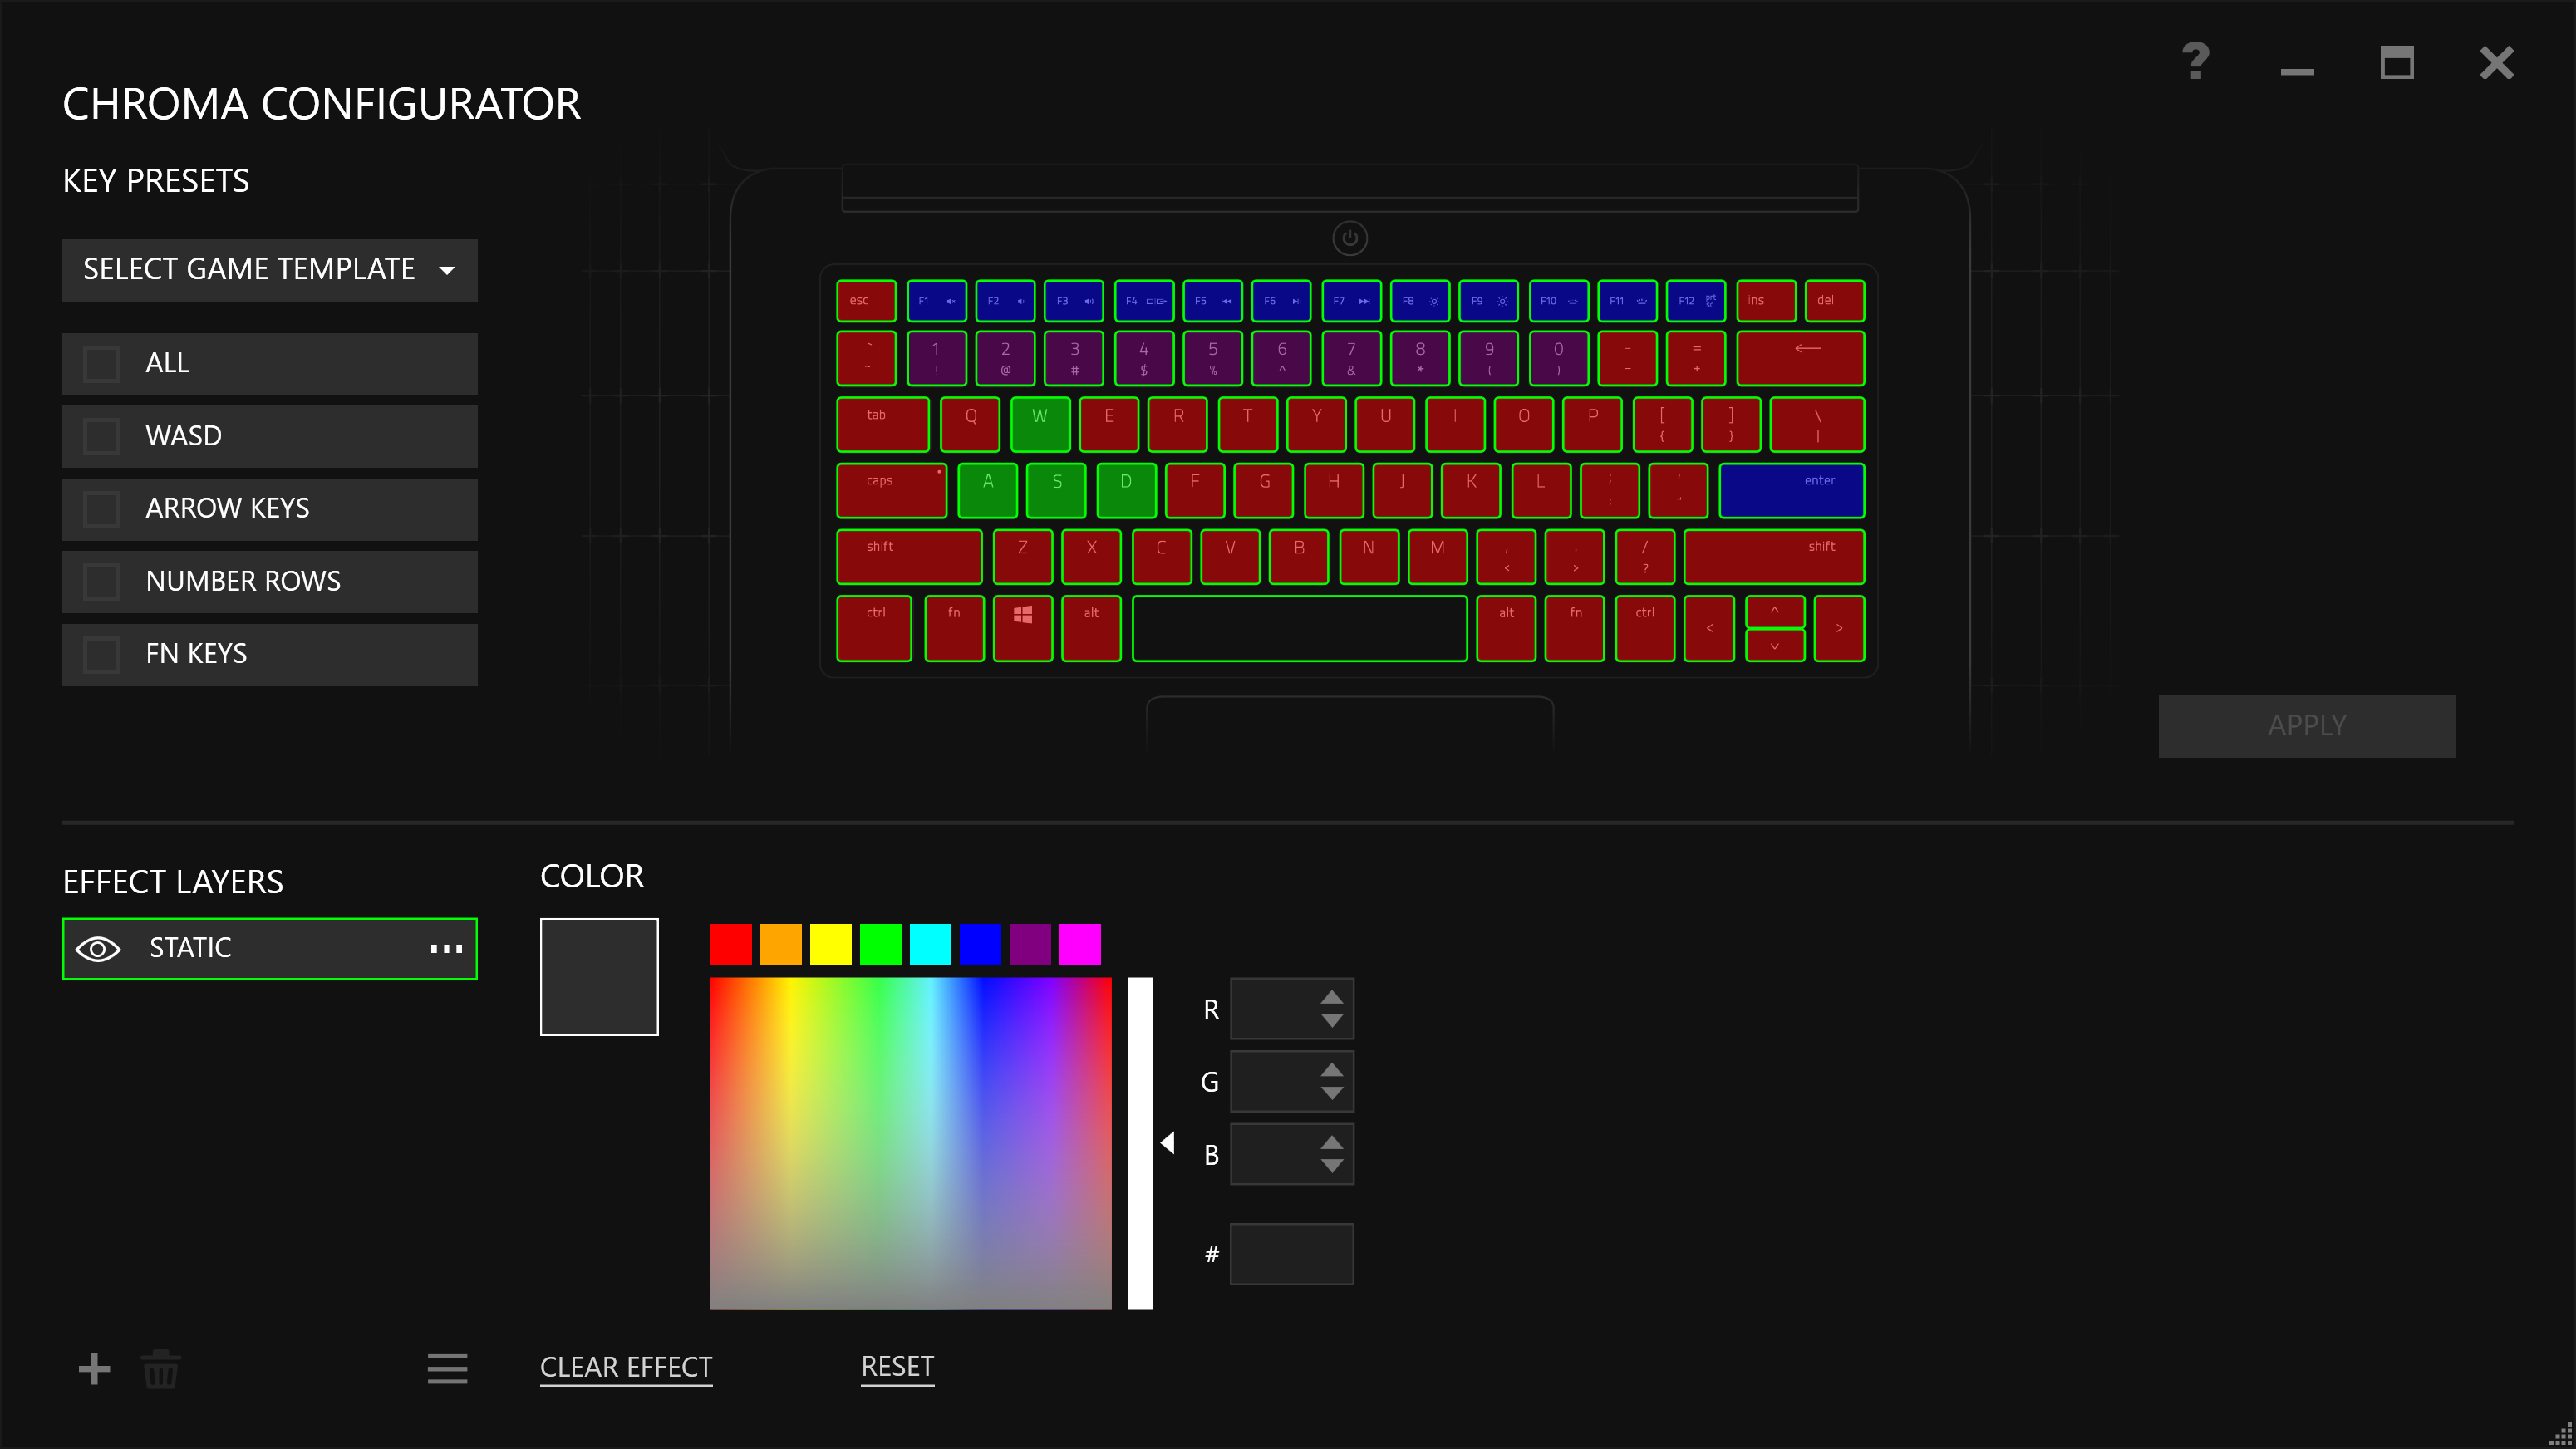 Wireless, Speakers, Thermals, Noise, and Software - The Razer Blade